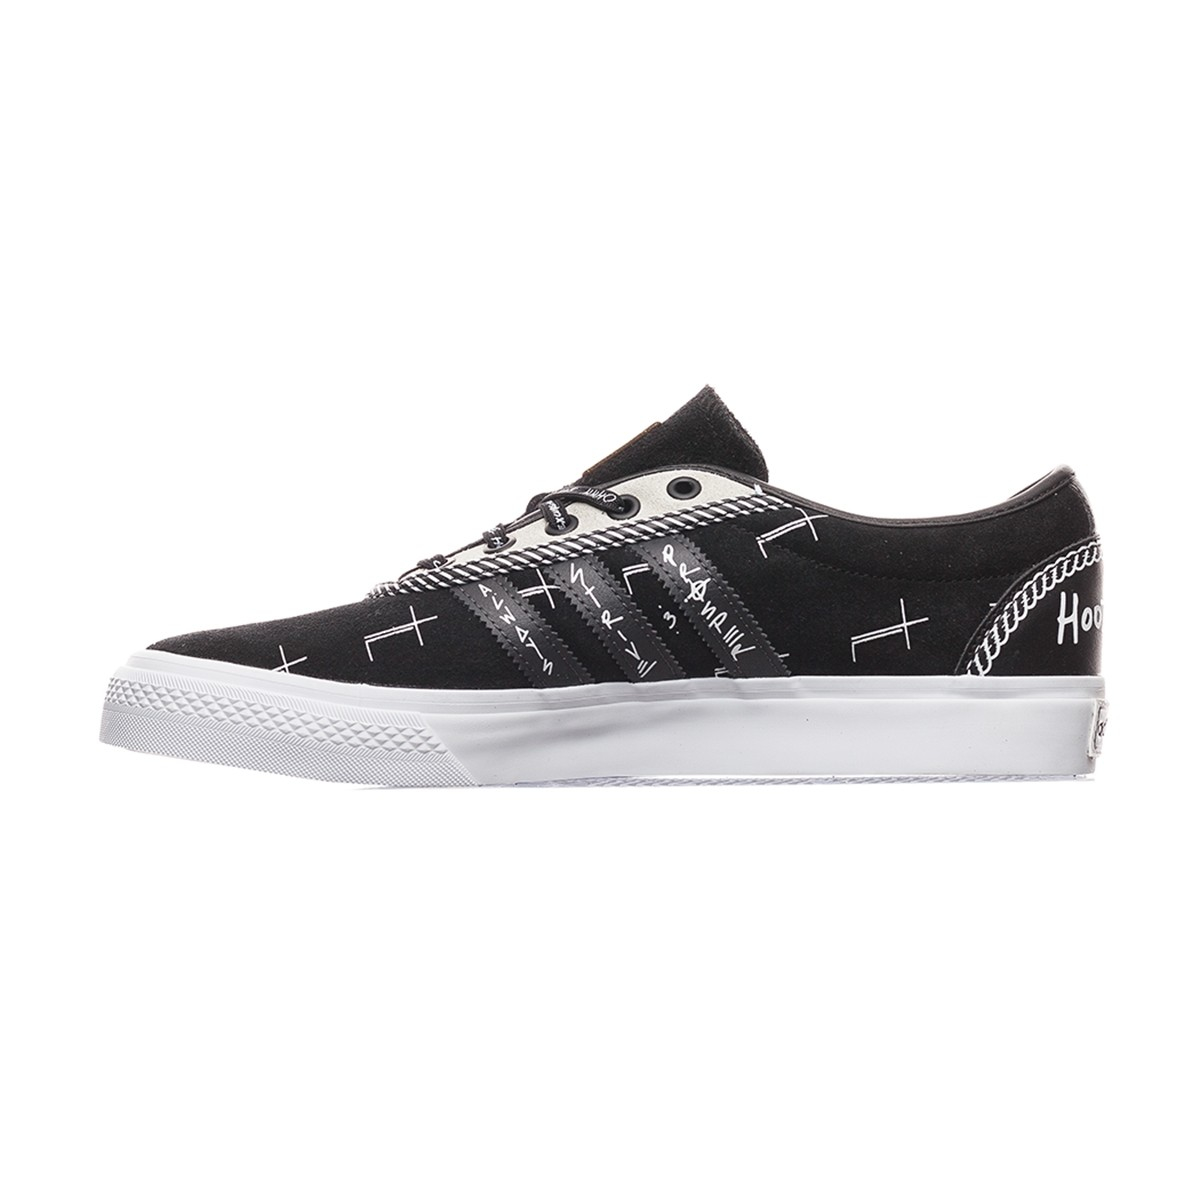 reputable site e9f9d 70cb9 Lyst - adidas Originals Aap Ferg Adi-ease Trap Lord Collecti